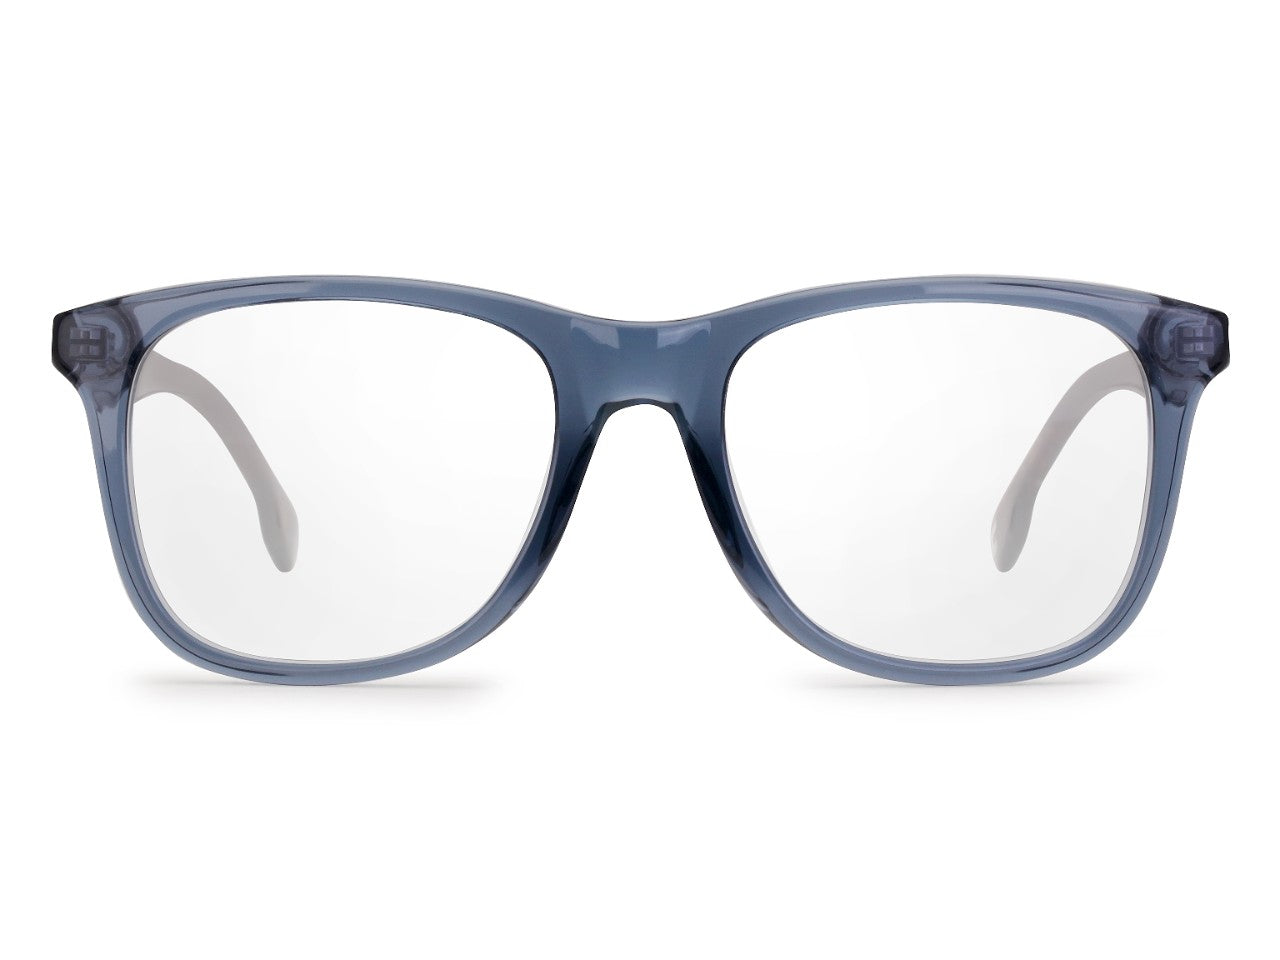 Carrera - 135 Havana Blue Eyeglasses / Demo Lenses